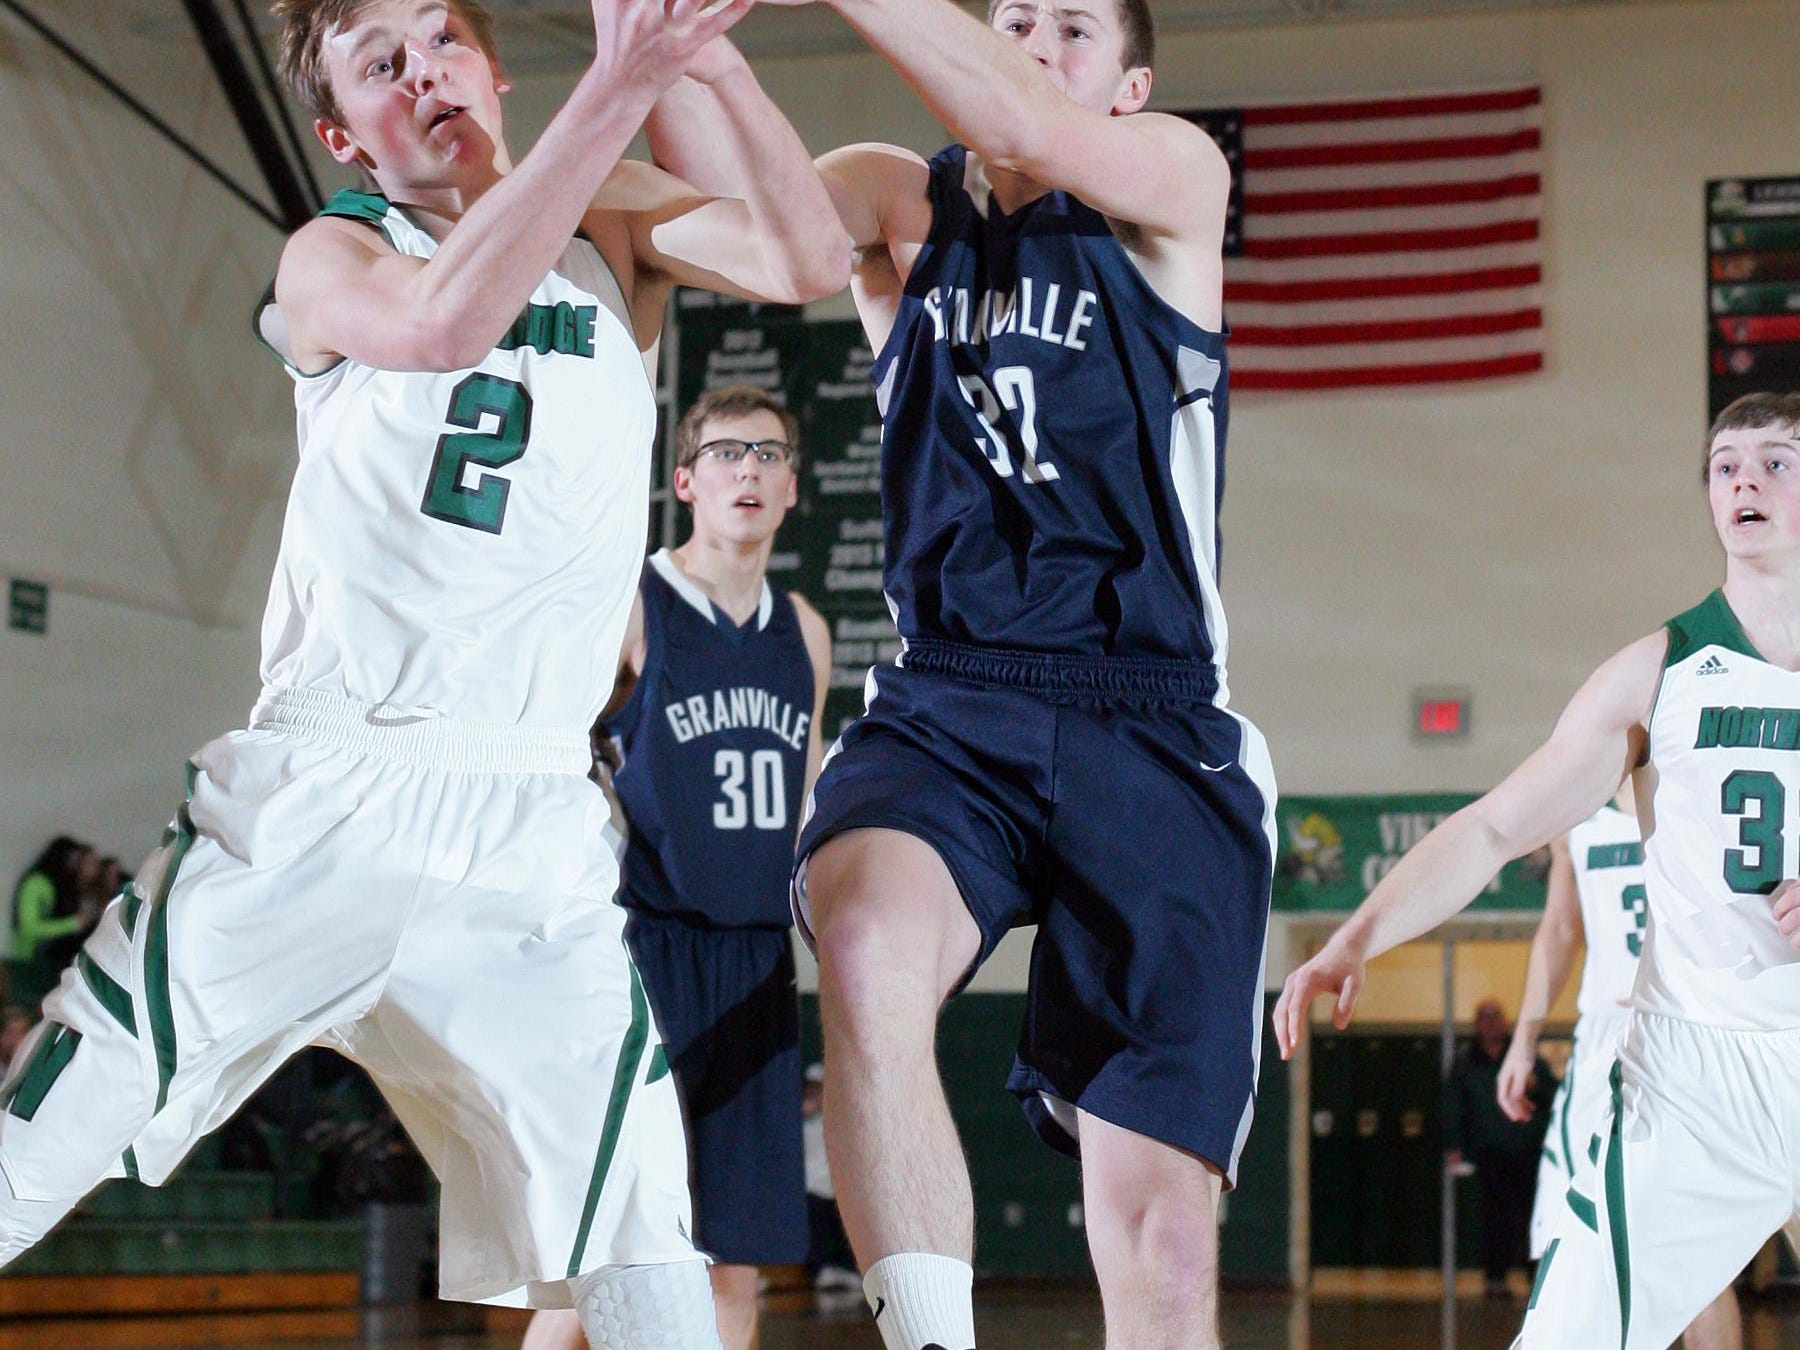 Northridge's Daniel Hatfield battles a Granville player for a loose ball during a 2014-15 game.